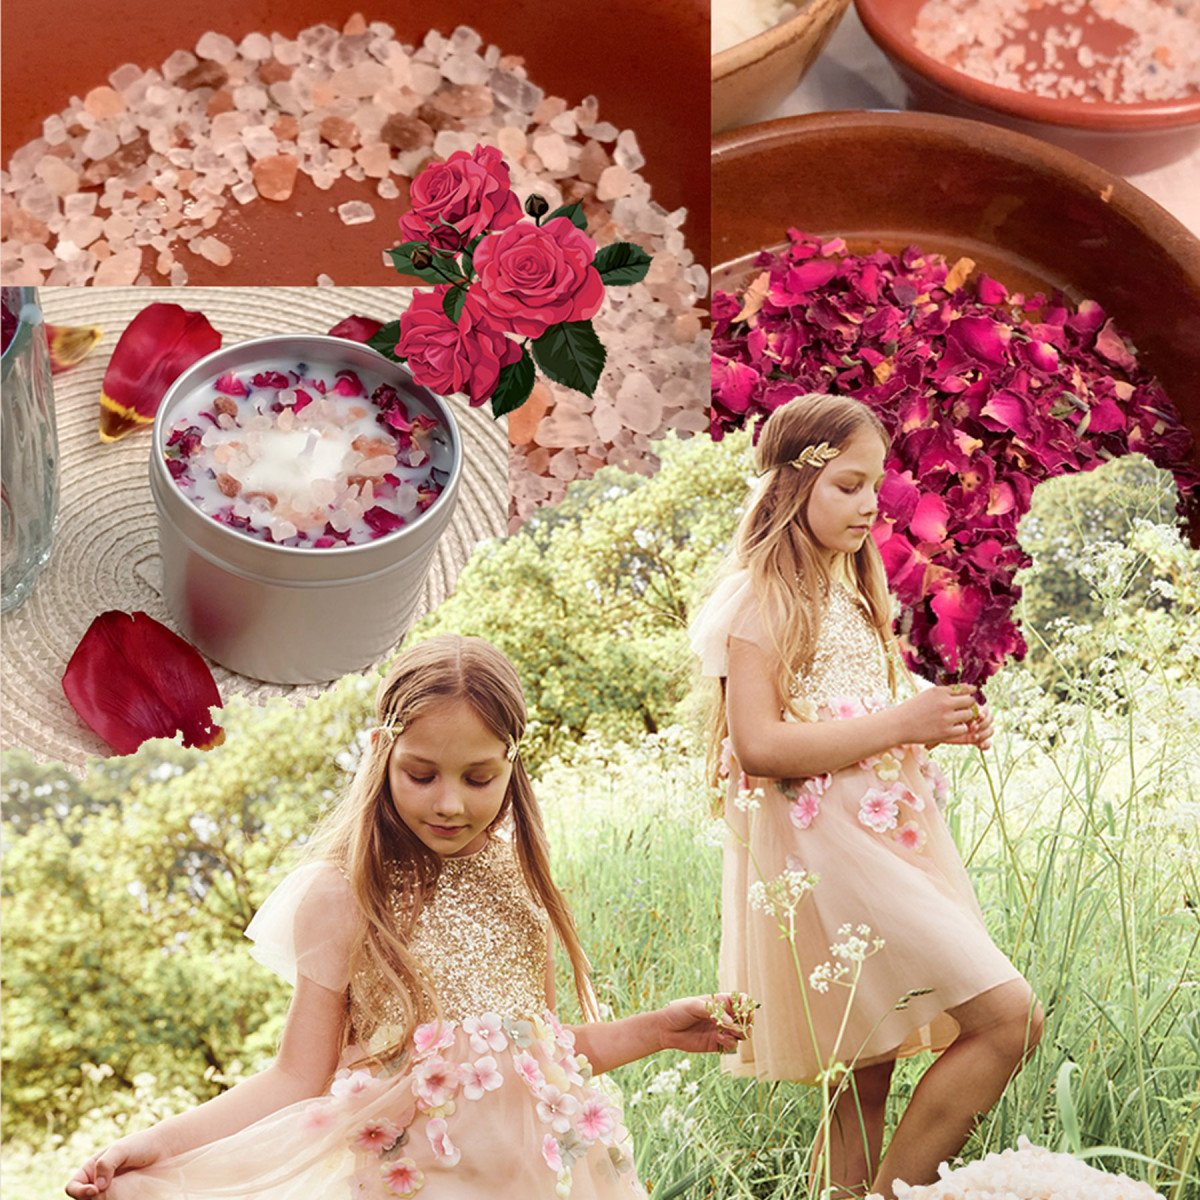 At Home with Wild & Gorgeous - Flower Candle Making